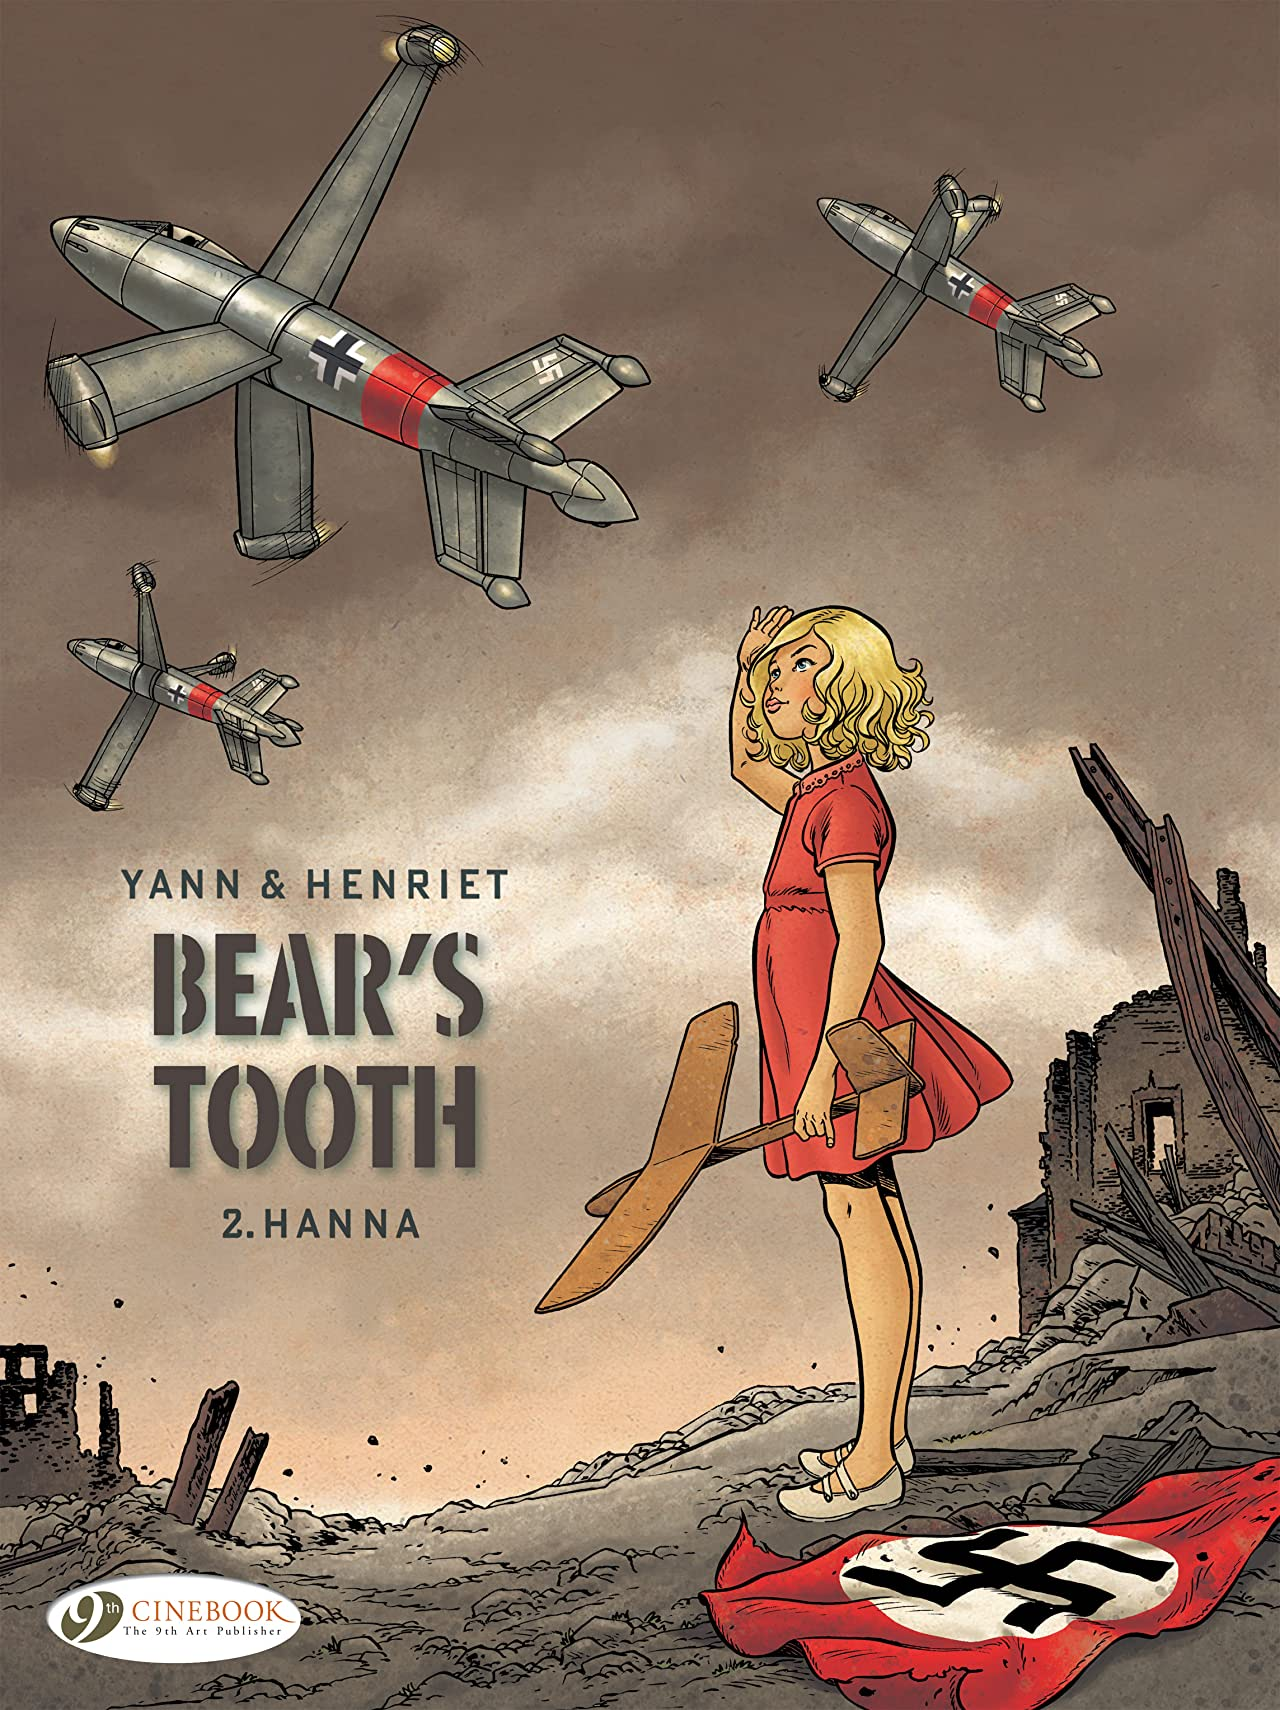 Bear's tooth Vol. 2: Hanna